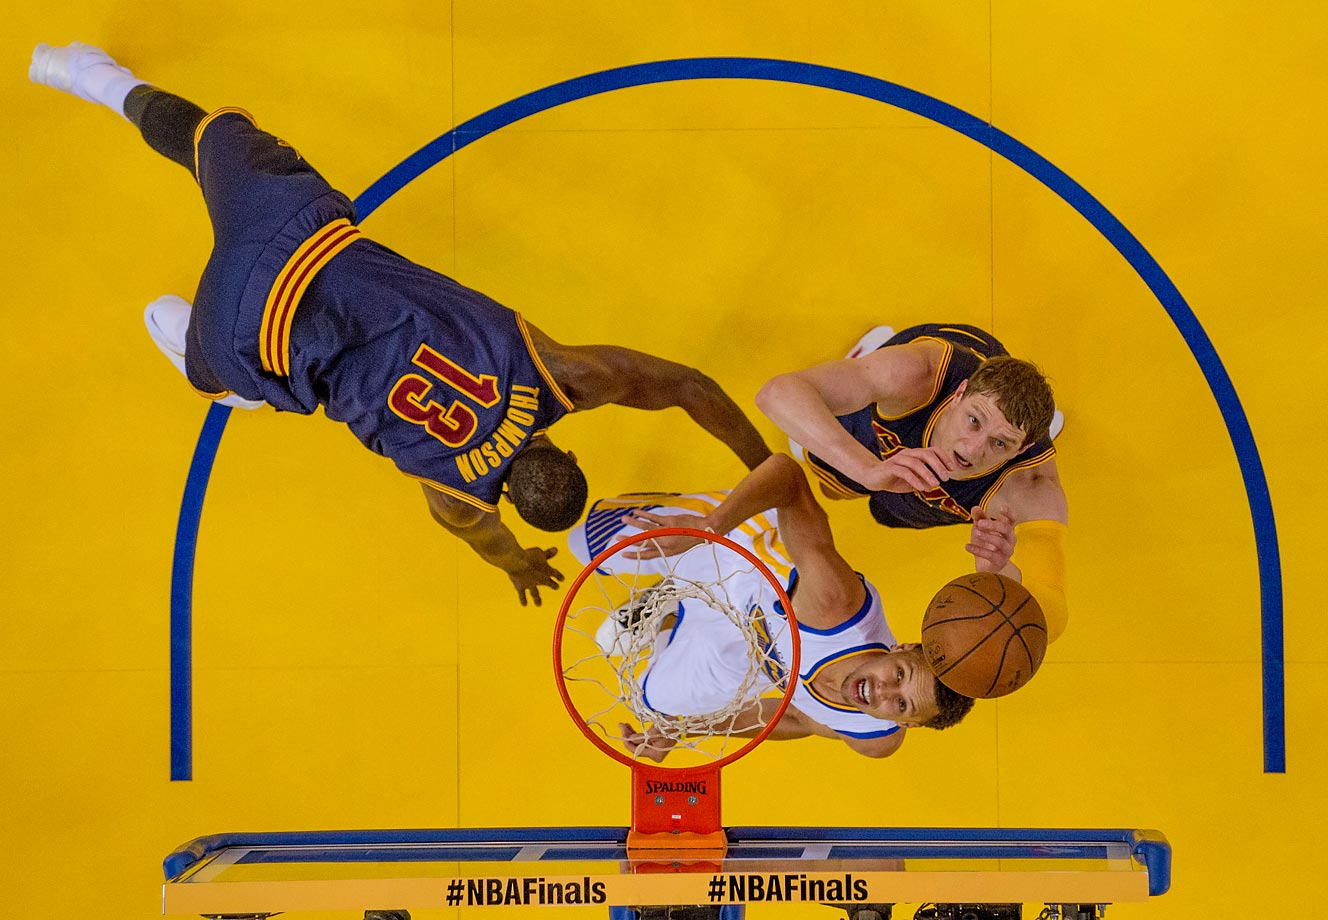 Golden State Warriors guard Stephen Curry and Cleveland Cavaliers center Timofey Mozgov fight for a rebound during Game 2 of the NBA Finals on June 7.